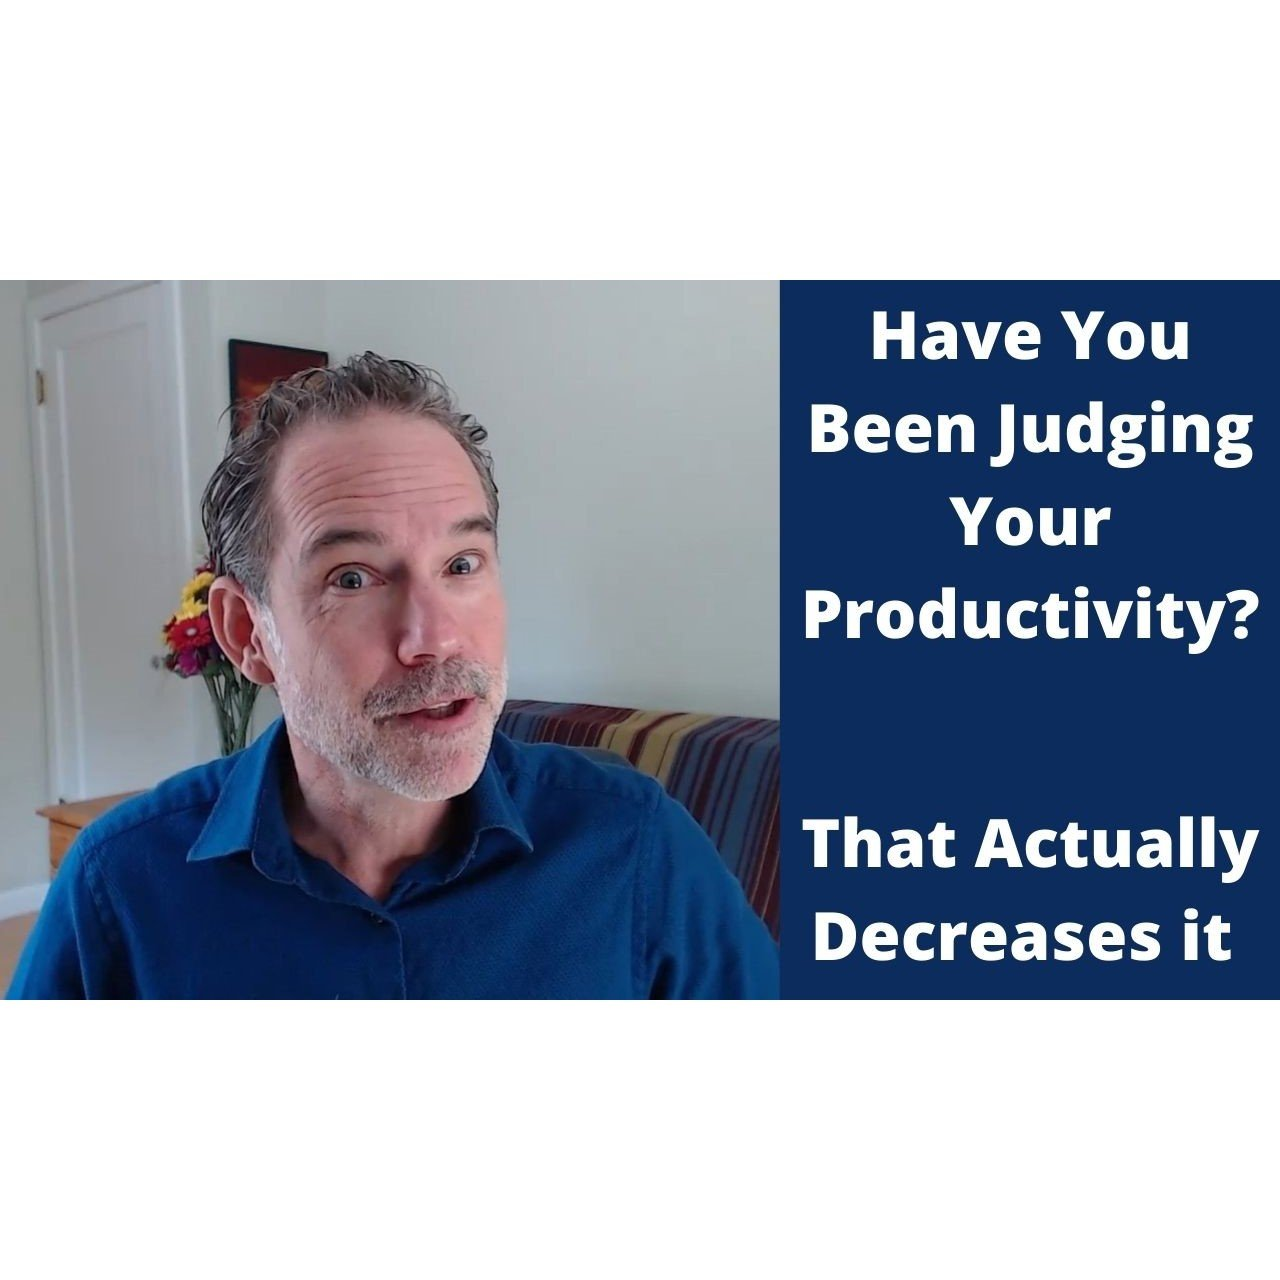 Have You Been Judging Your Productivity?  Or Maybe Lack of it?